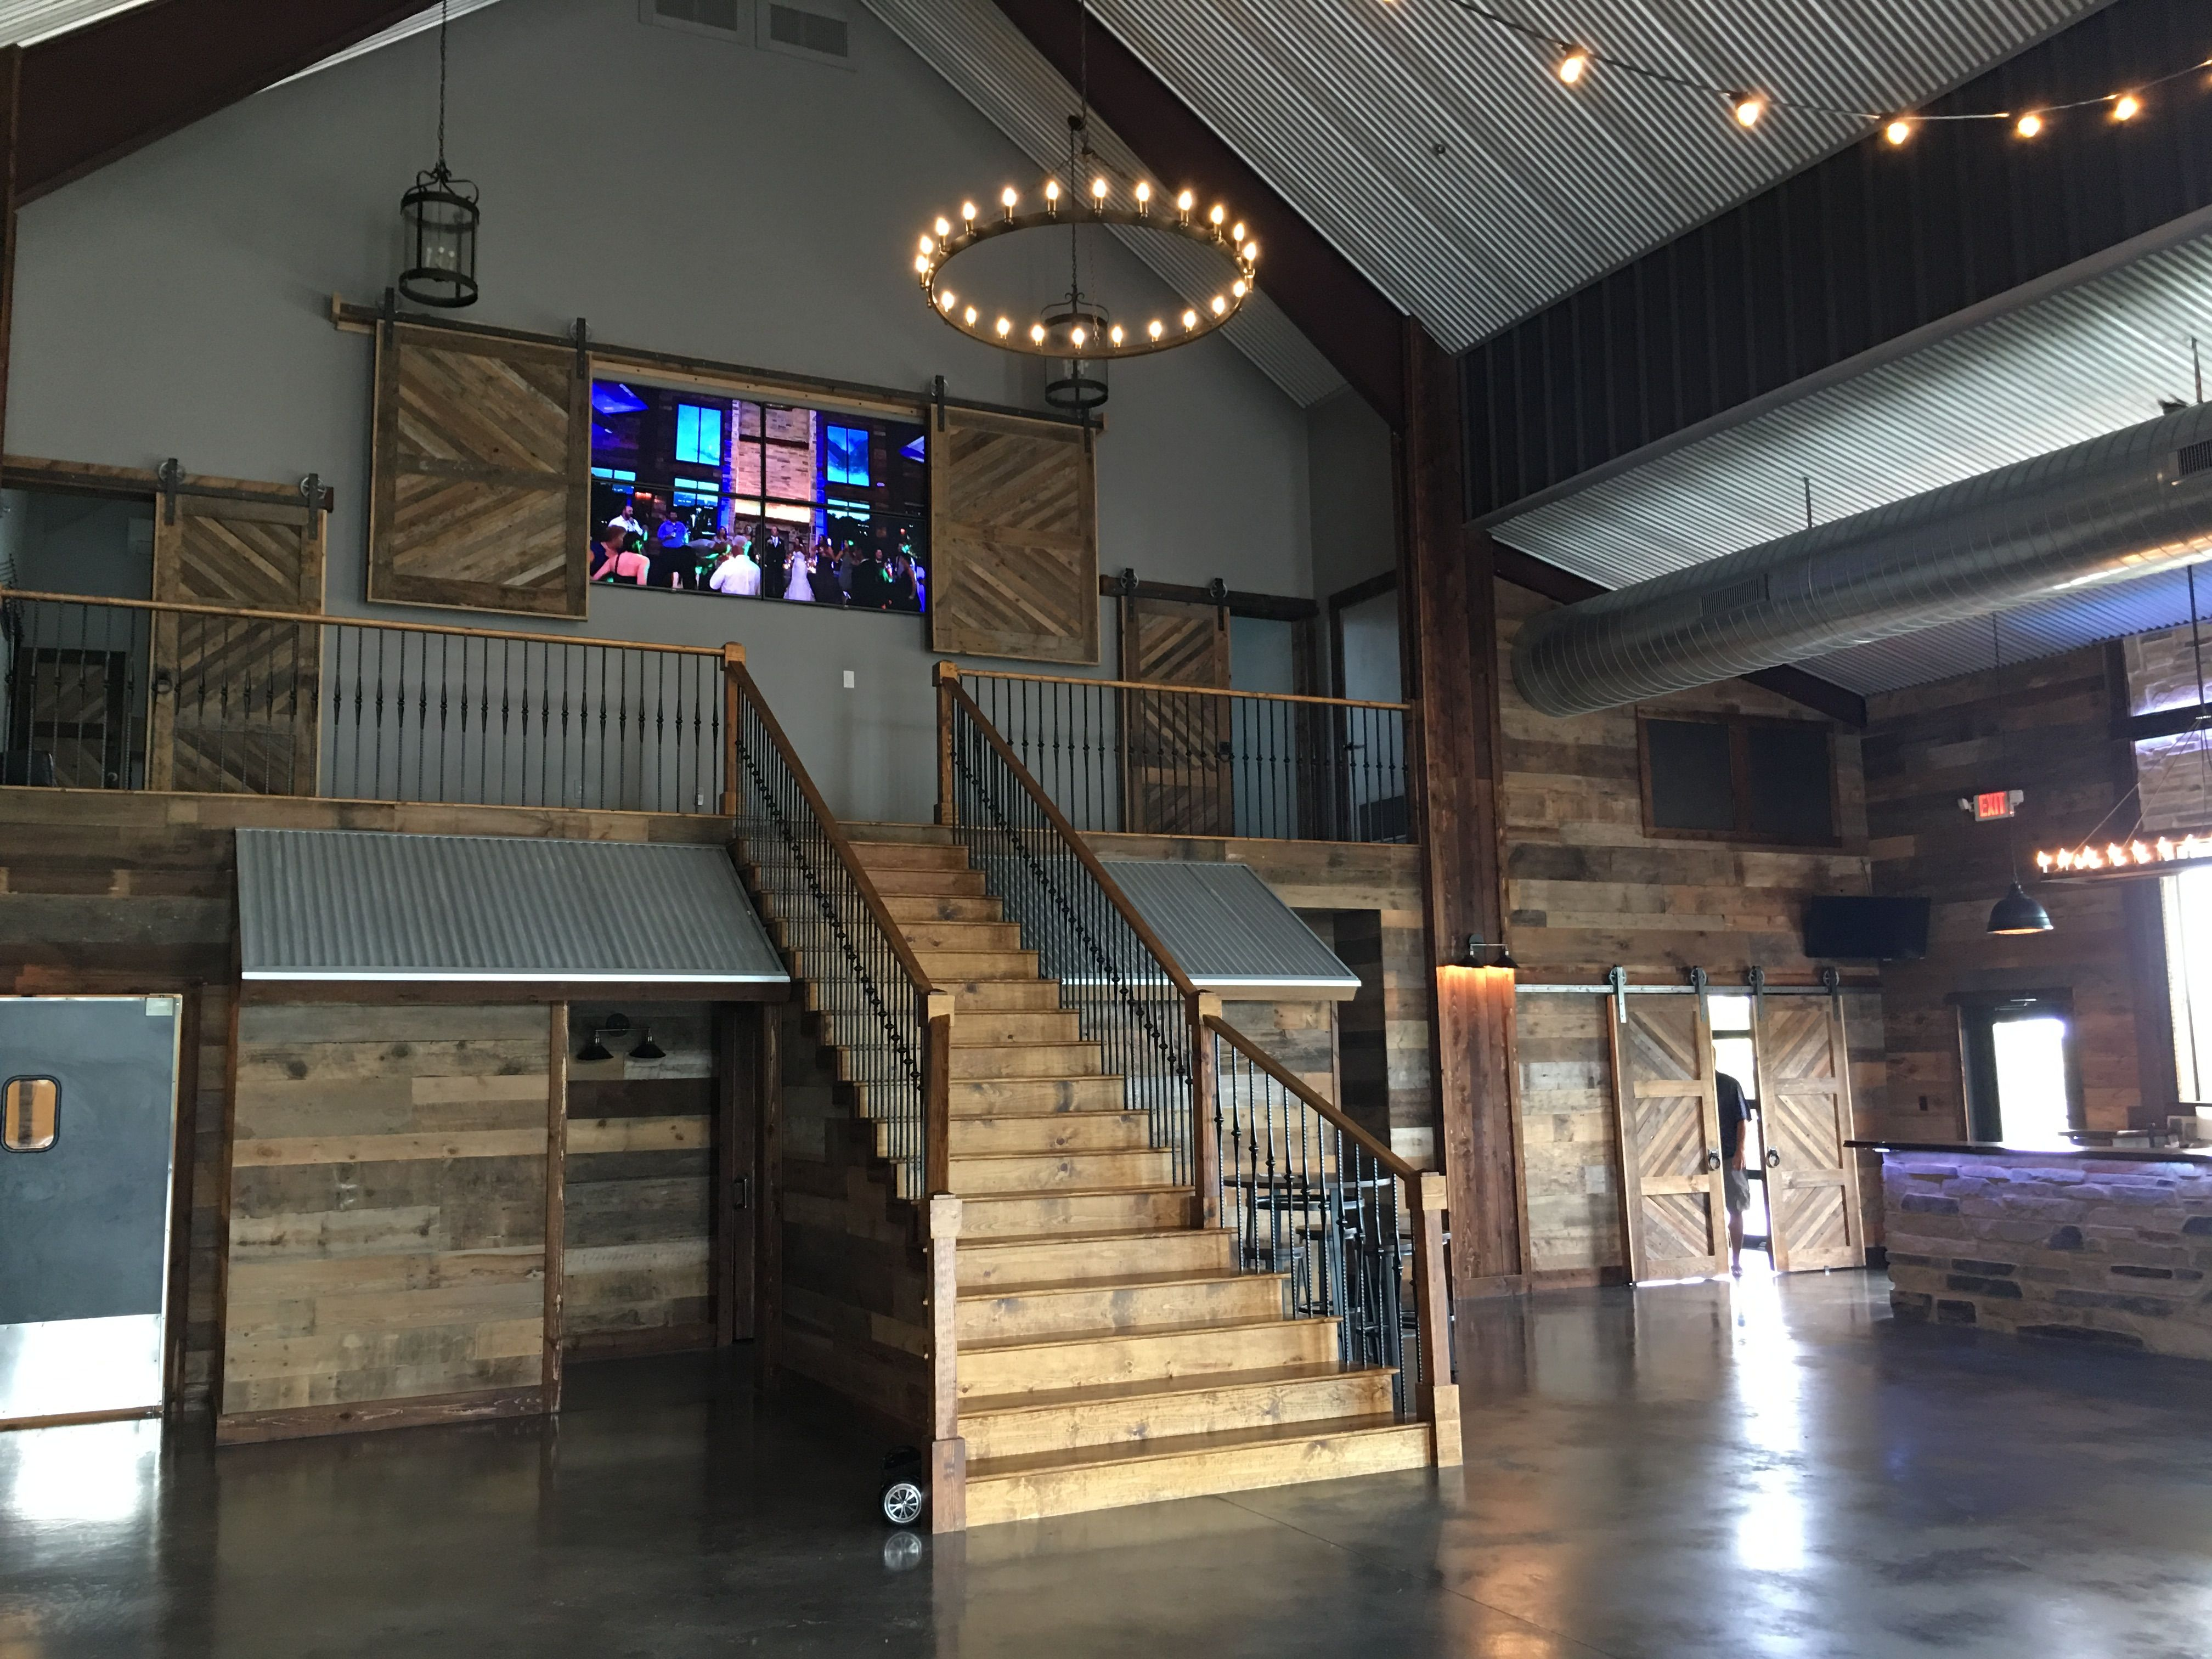 Stone Crest Venue is a beautiful new